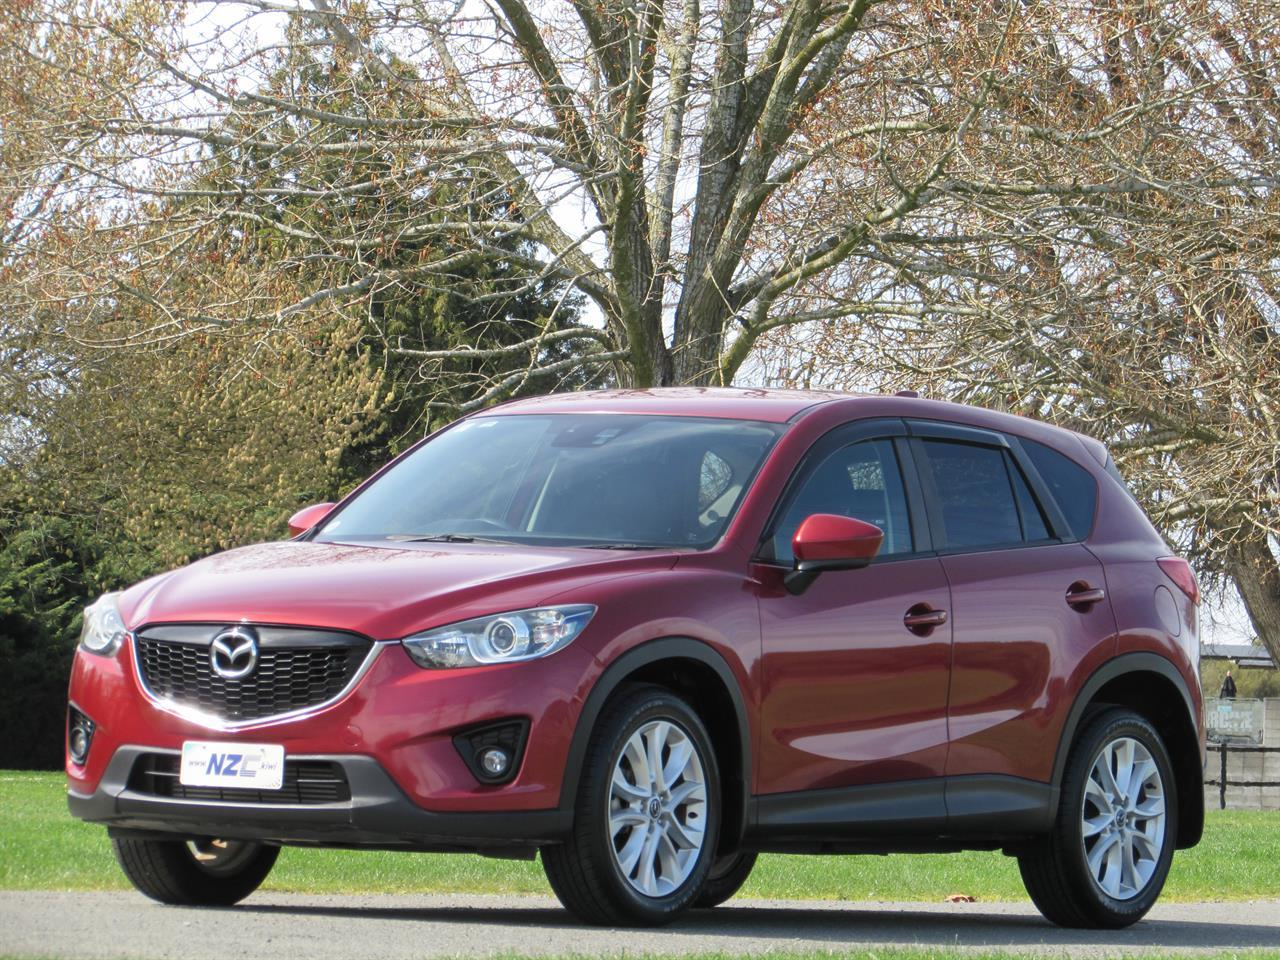 2012 Mazda CX-5 only $93 weekly